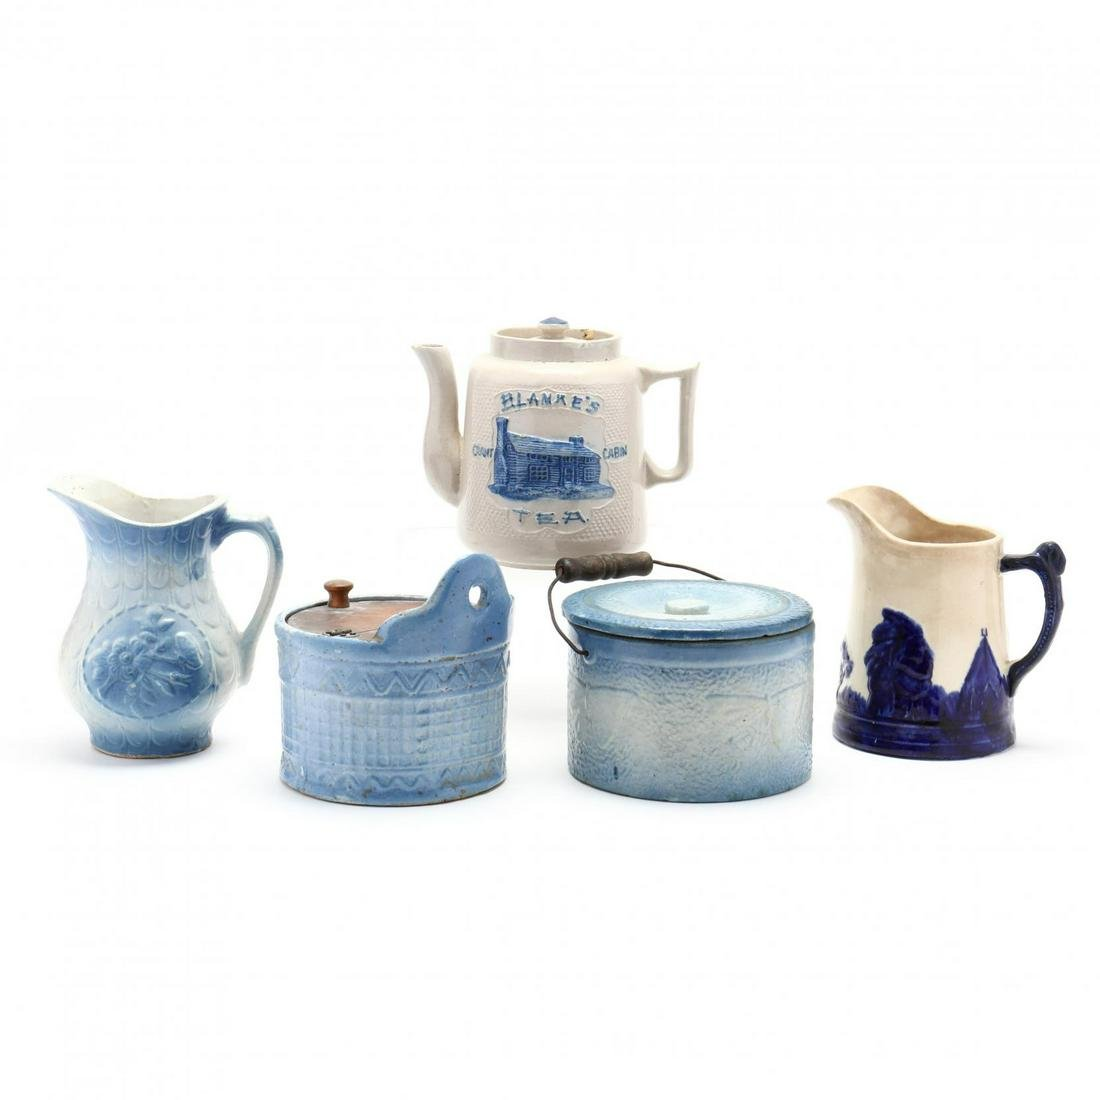 A Group of Five Blue Stoneware Pieces